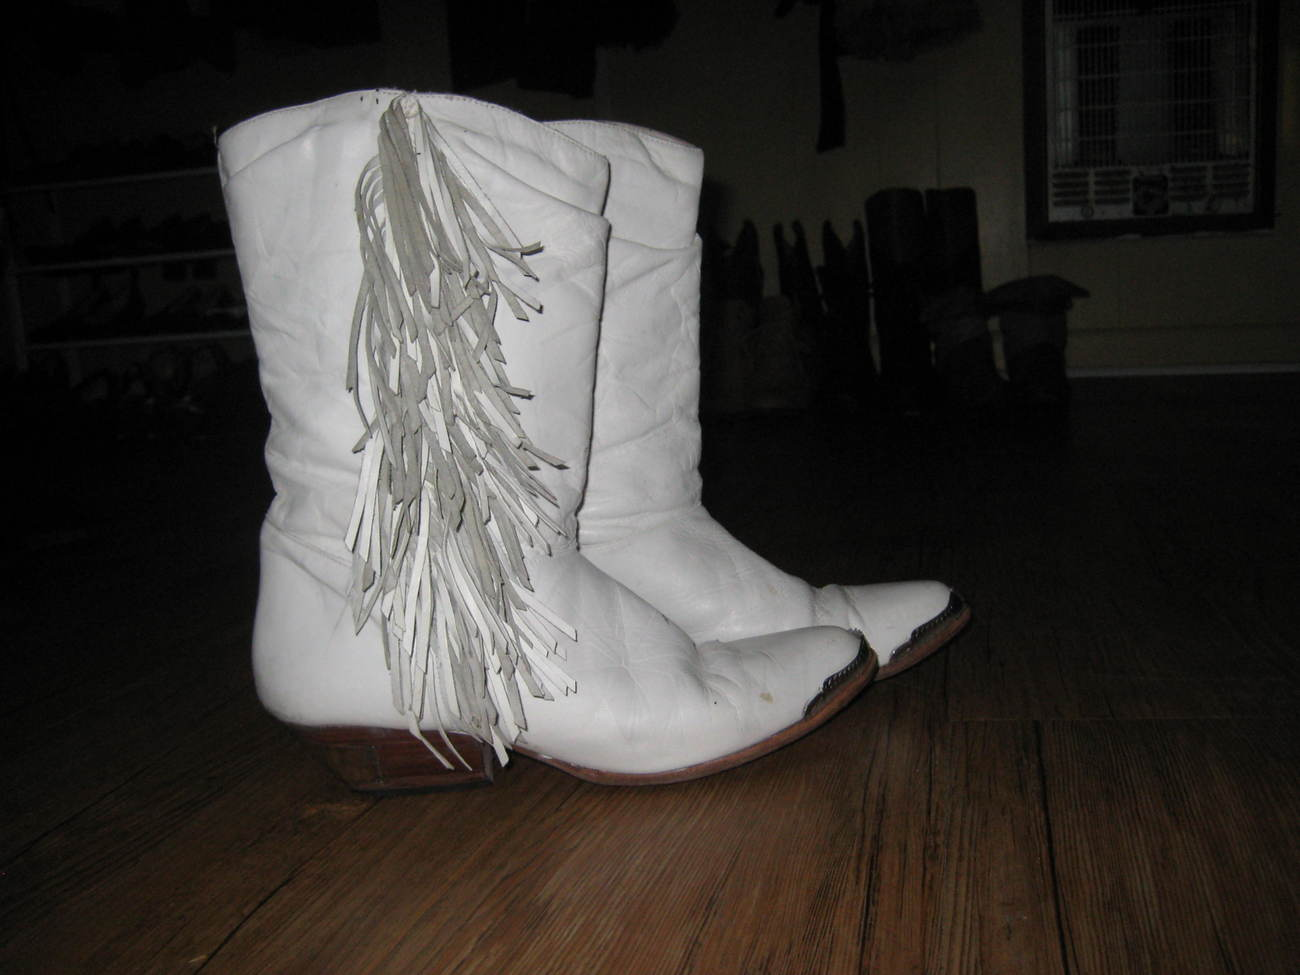 11abf89ce5c Goodbuy of the Day: Vintage White Leather Fringe Cowboy Boots 10 ...